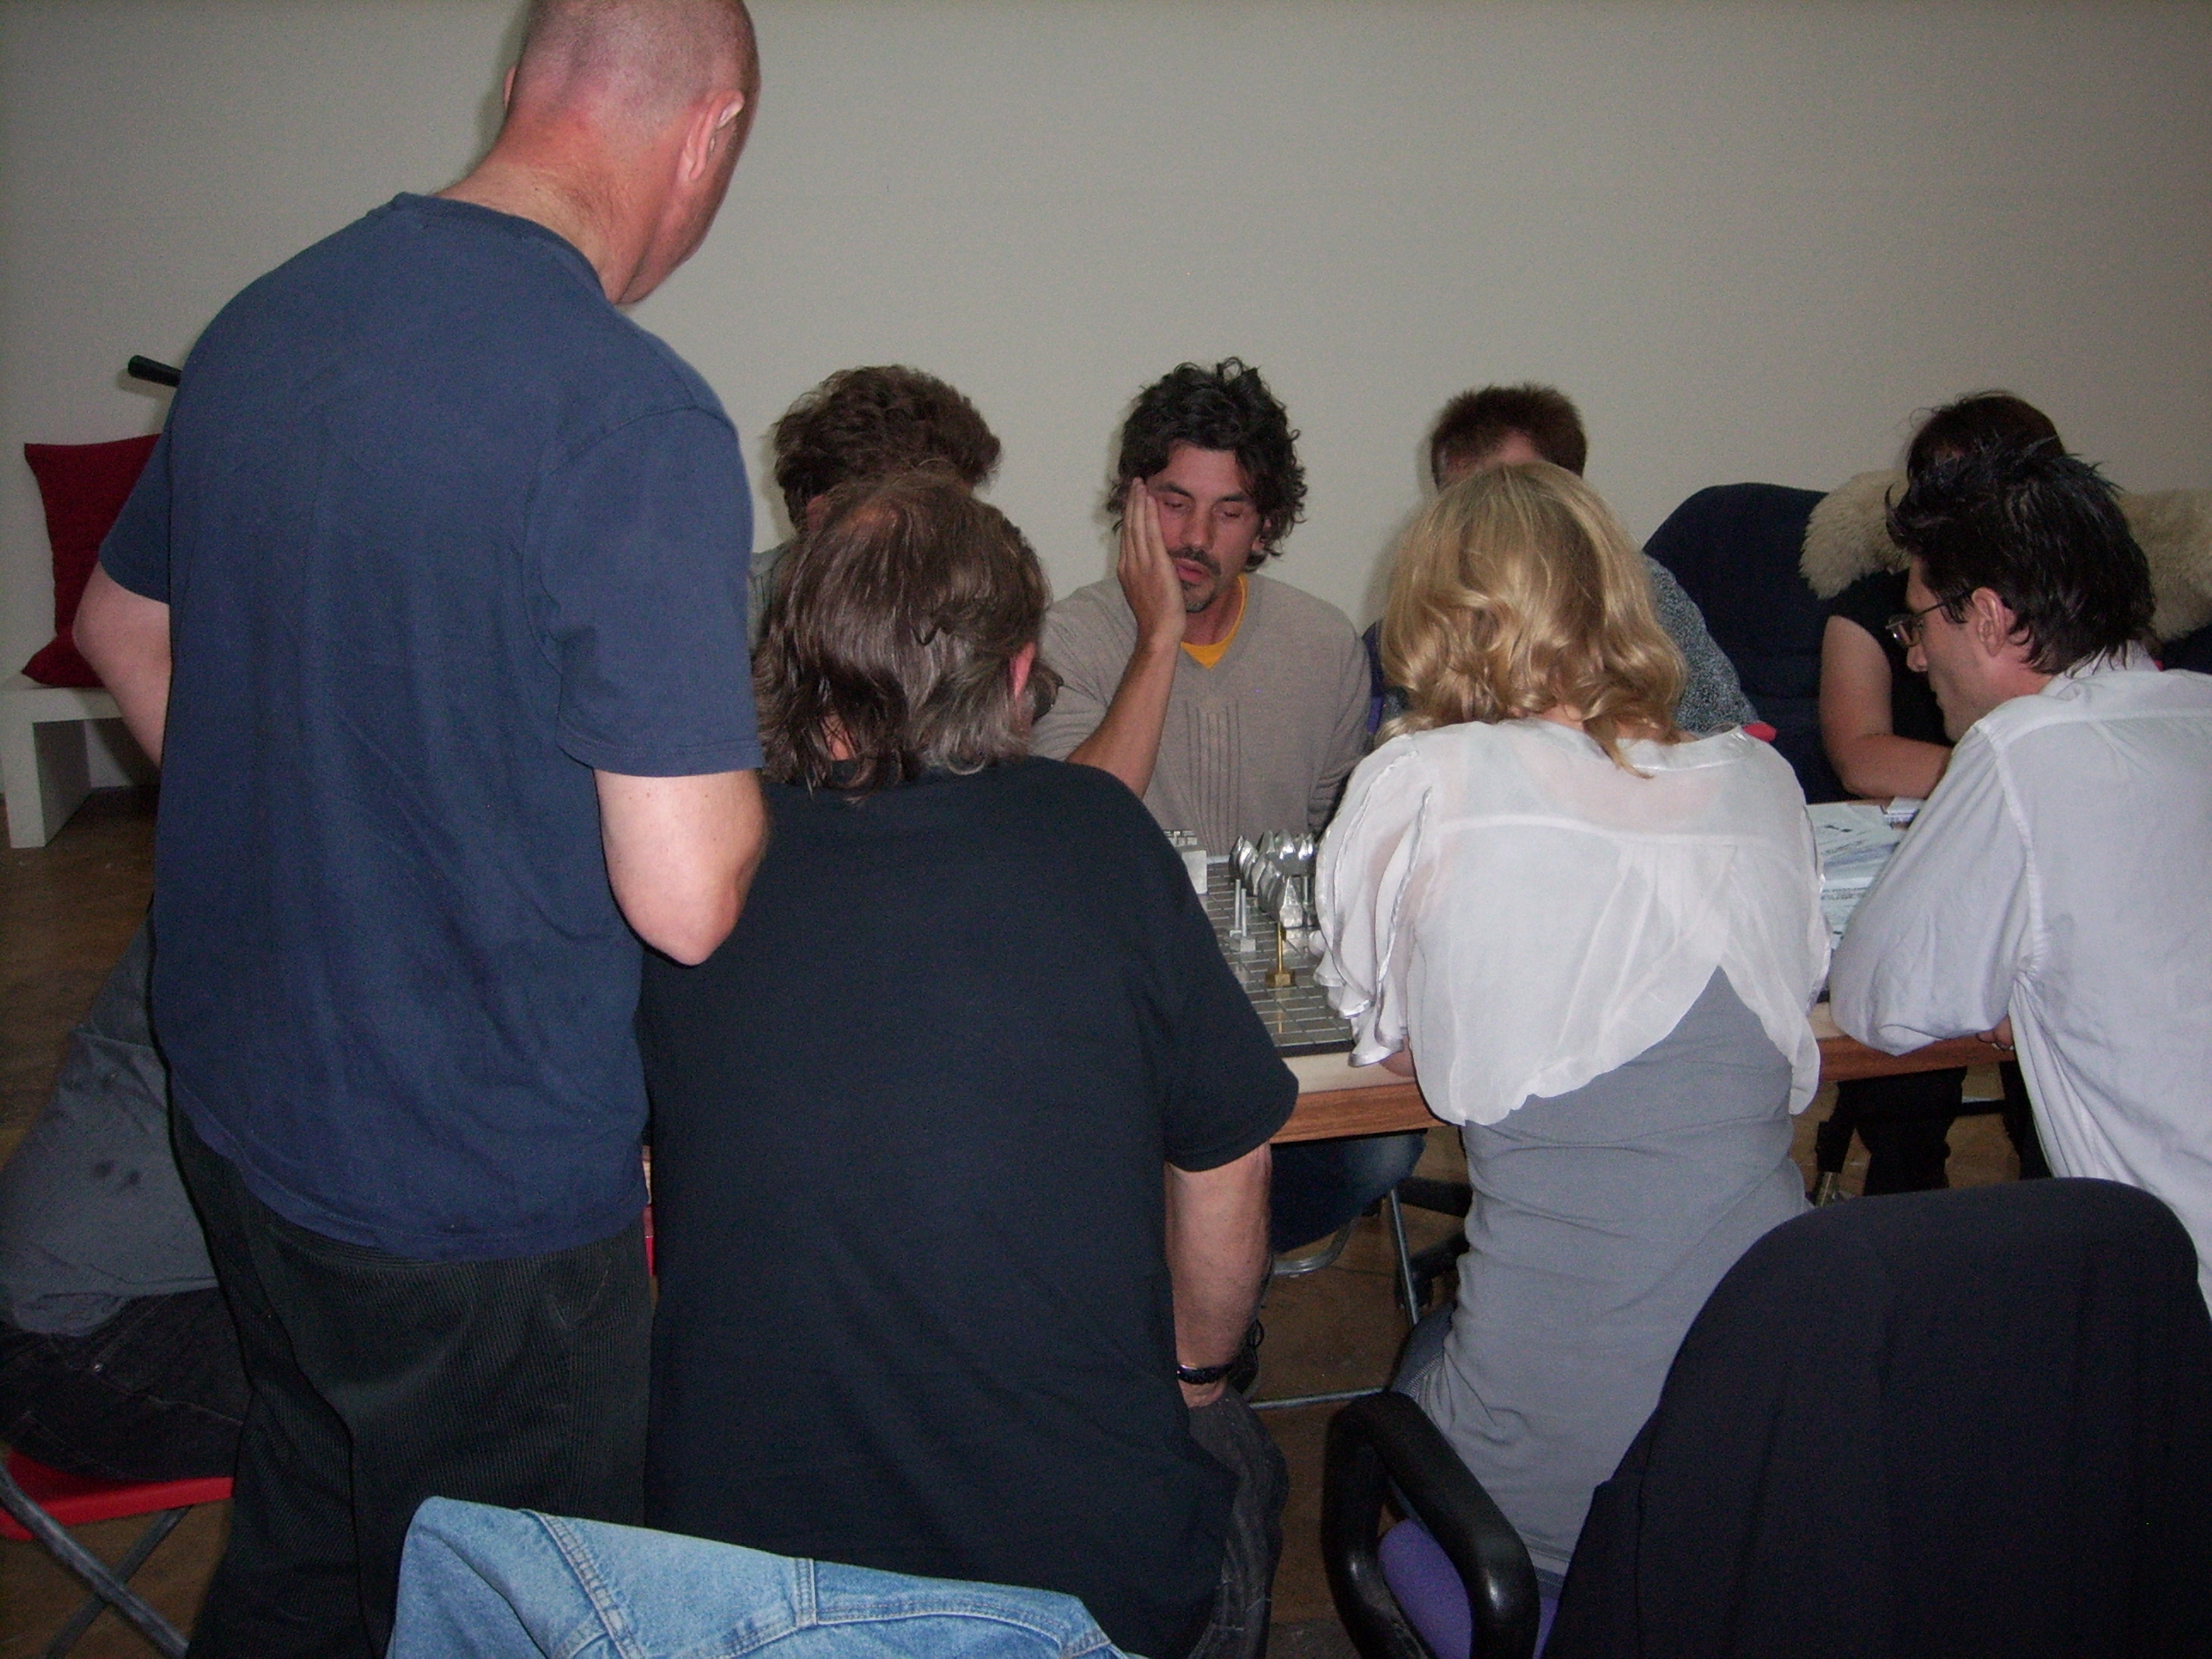 game_players_5